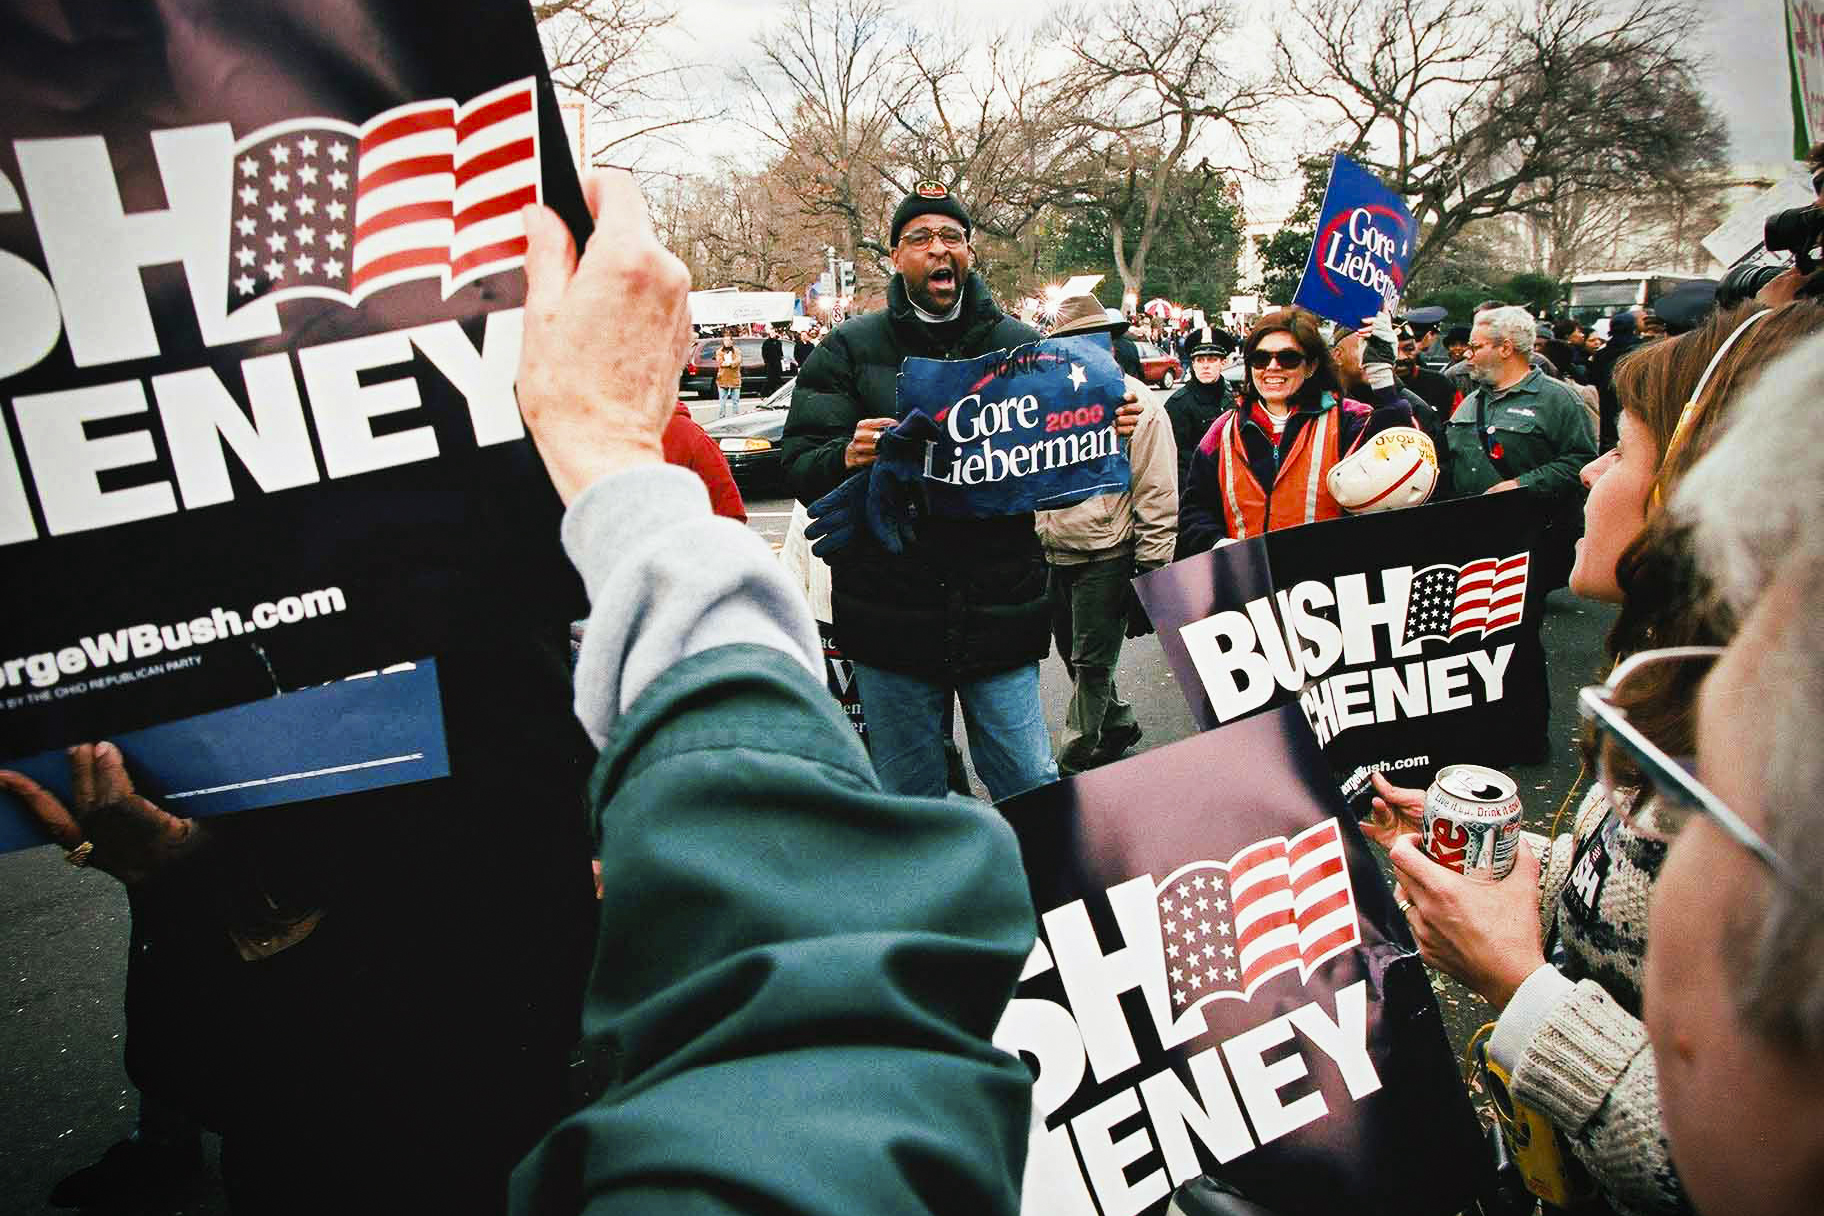 Two groups of people, one holding Bush/Cheney campaign signs, the other with Gore/Lieberman campaign signs, both chanting at each other outside the US Supreme Court.